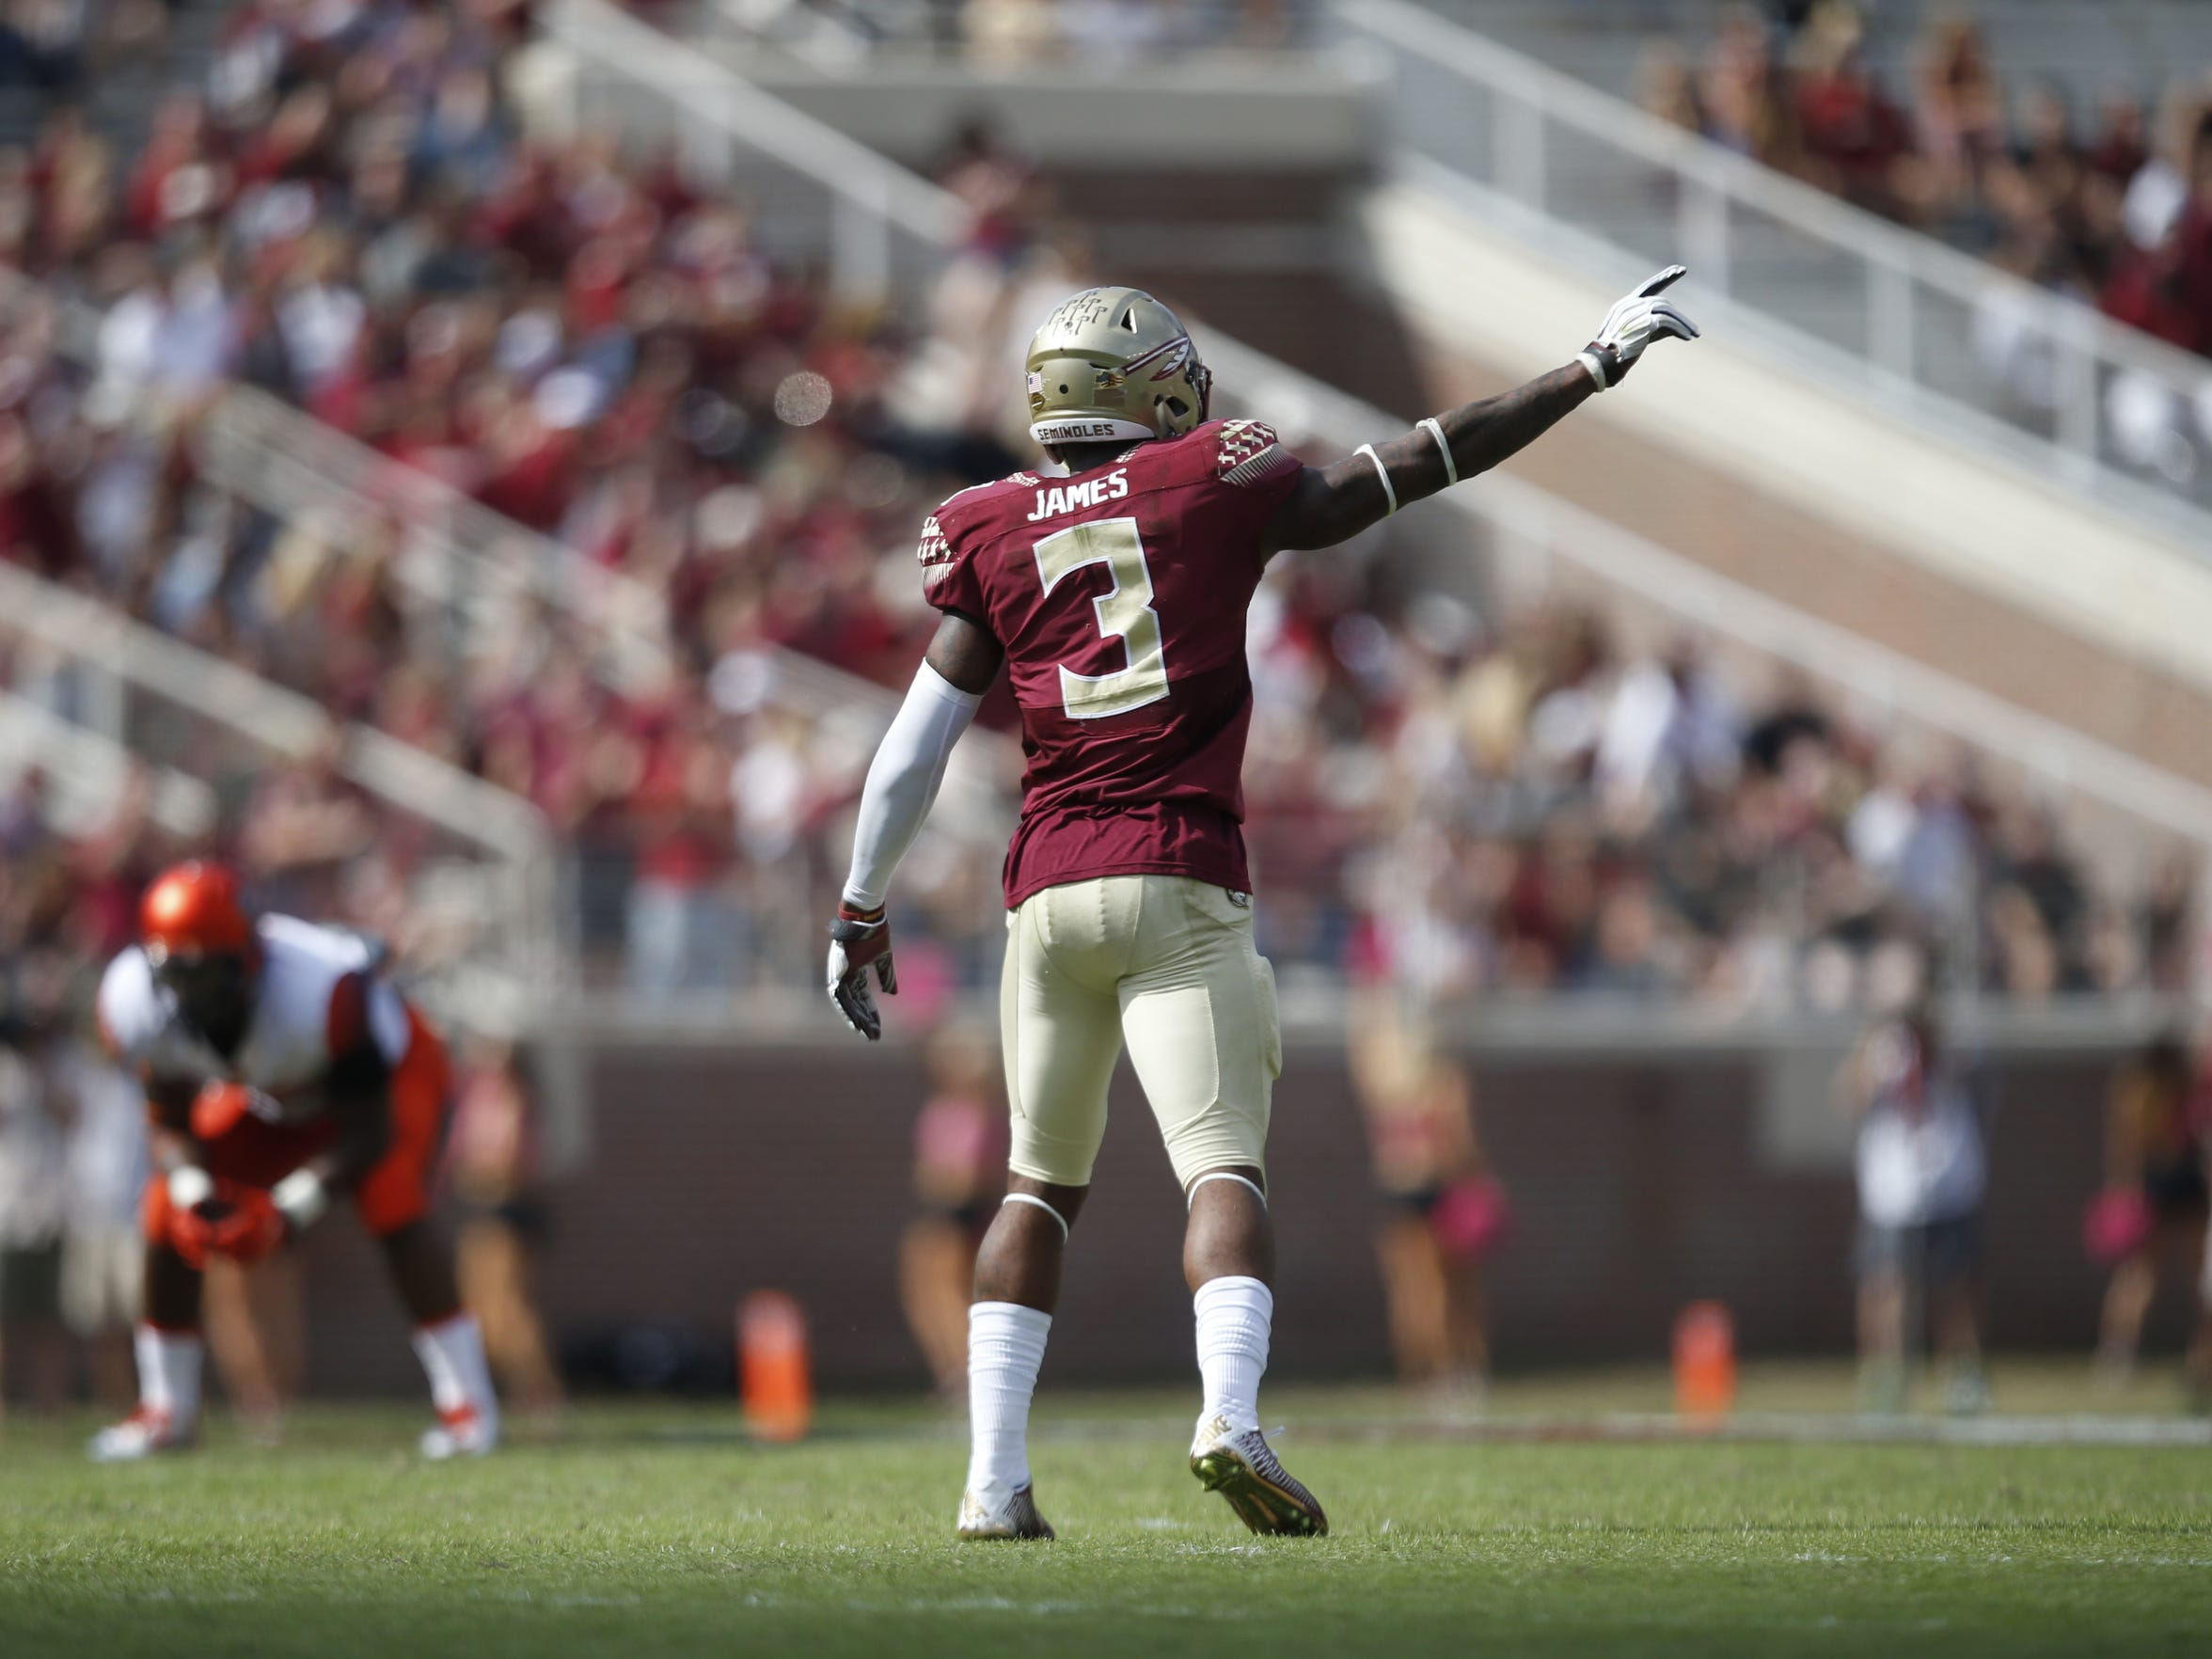 FSU star safety, Derwin James, was named a Preseason First Team All-American by Sports Illustrated this week.